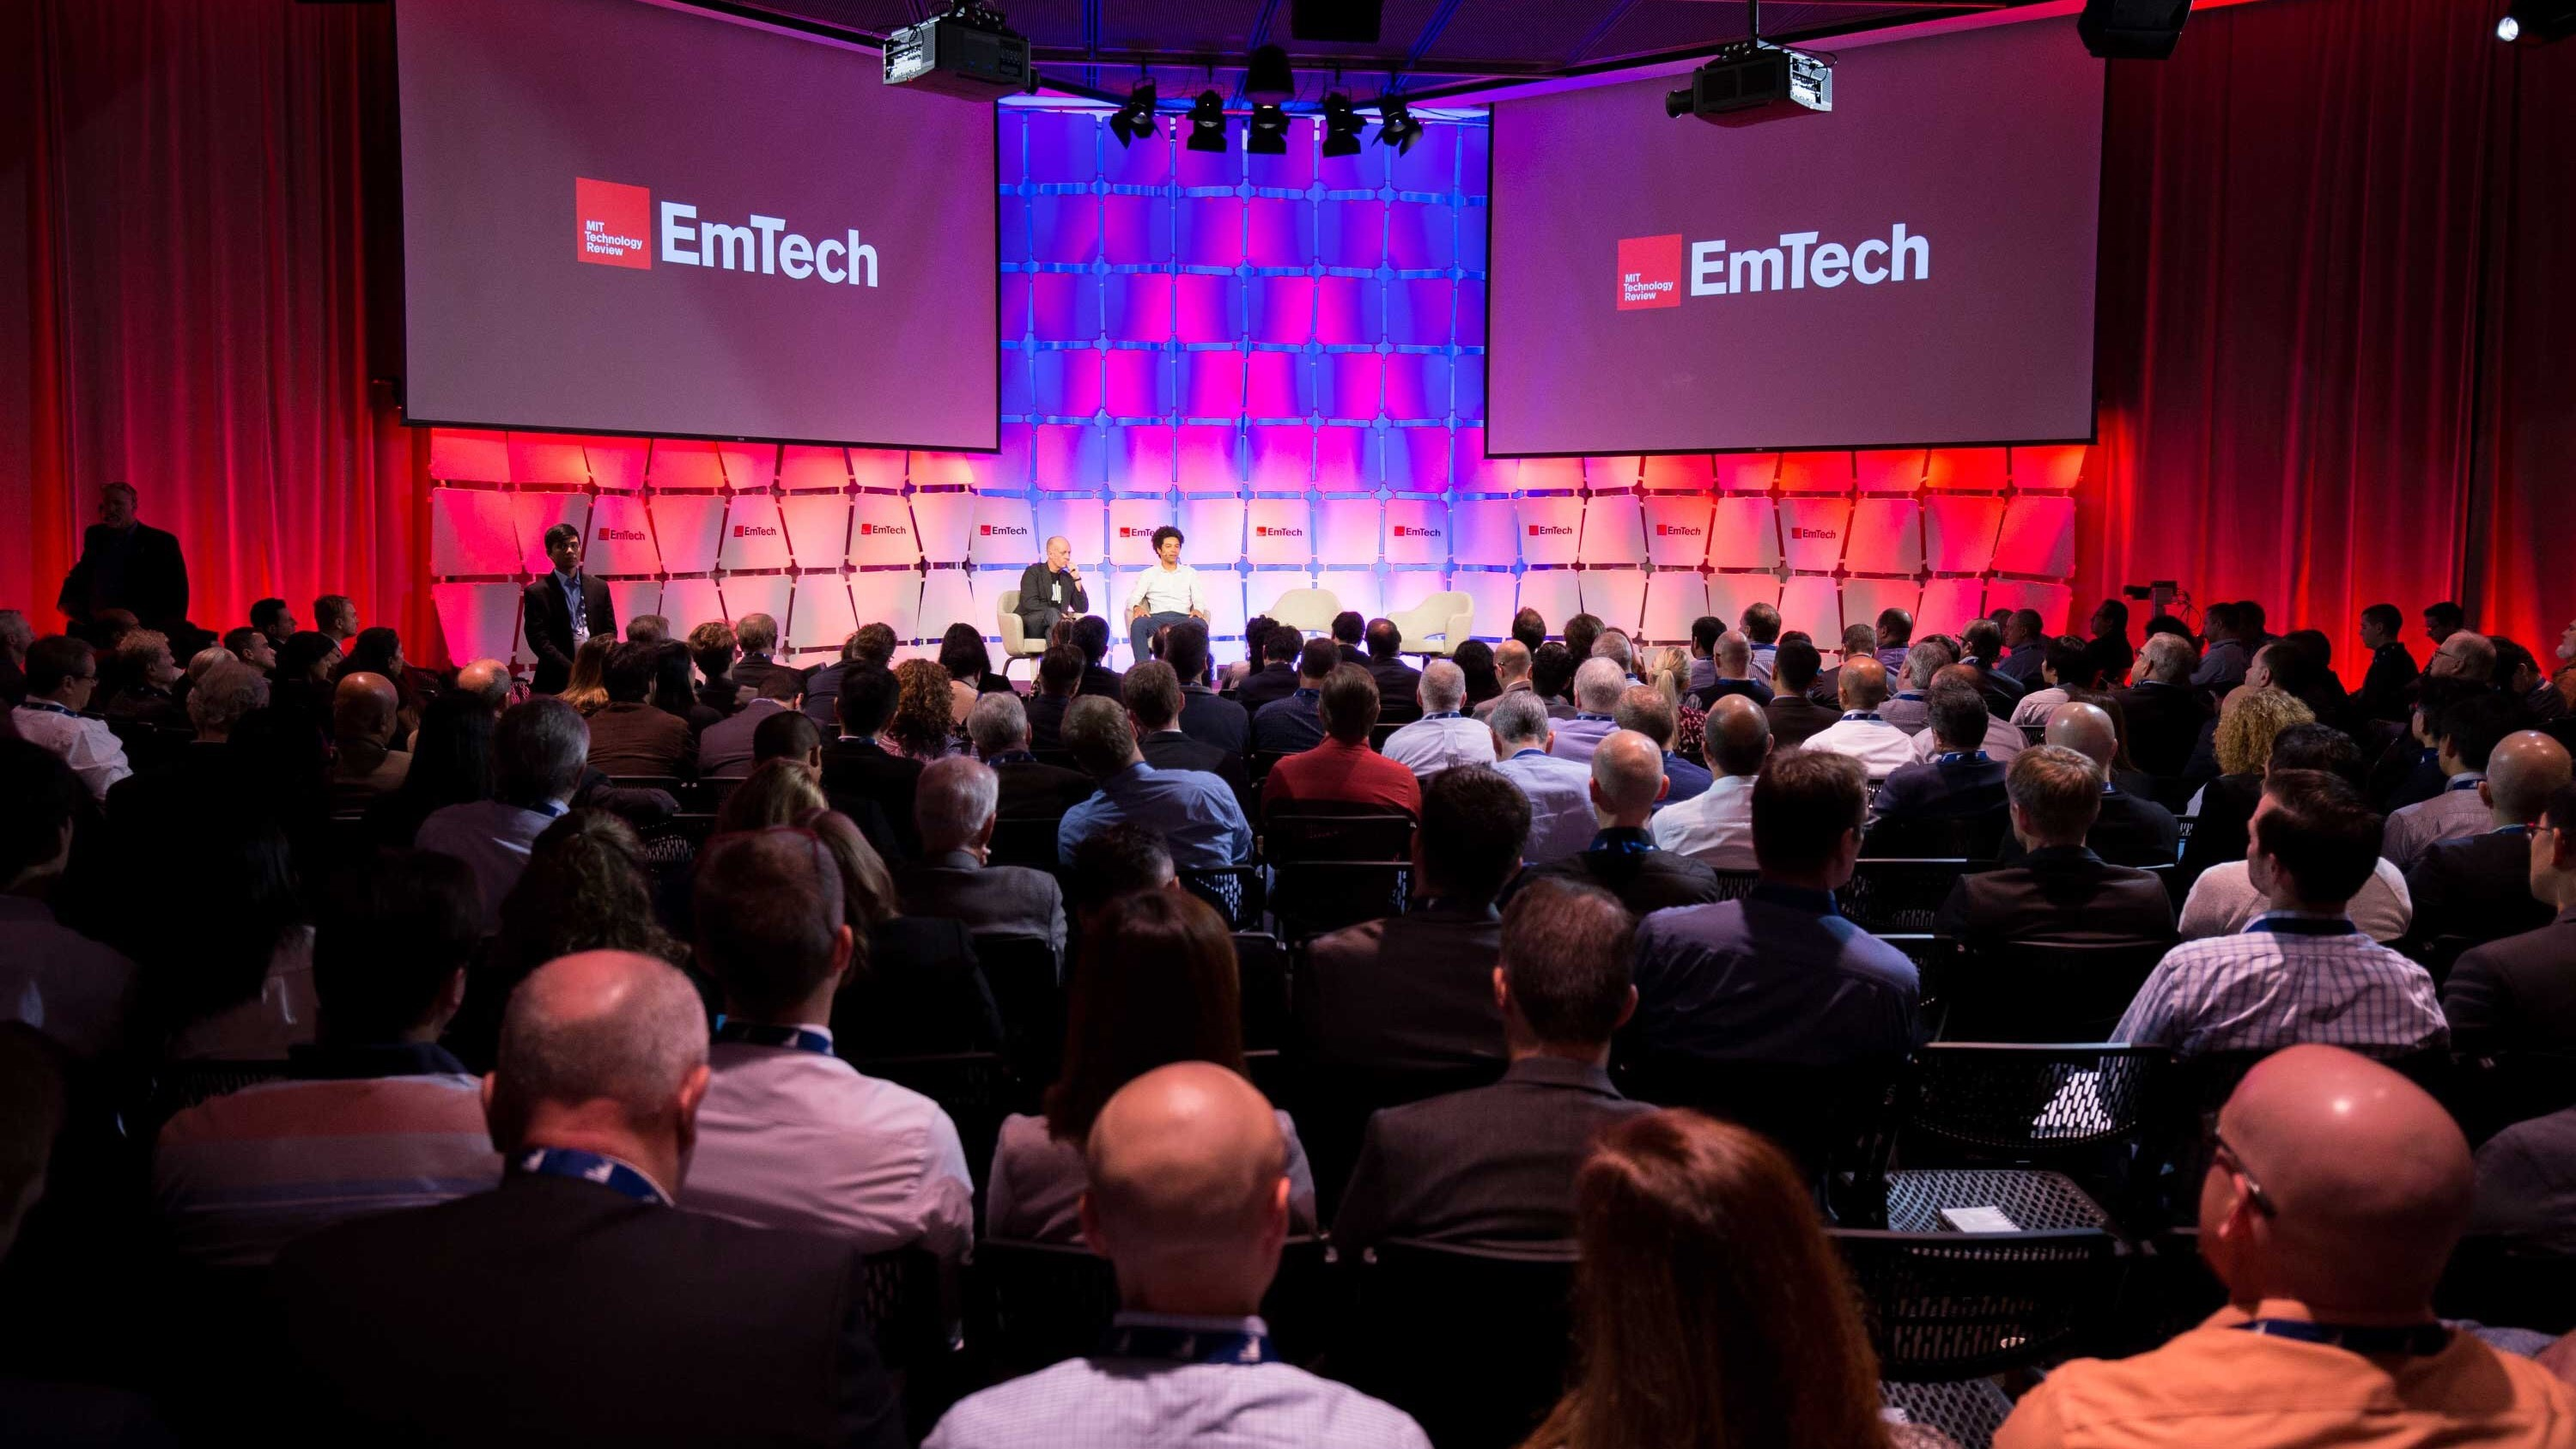 Dubai hosts EmTech MENA Emerging Technologies Conference on September 23 and 24